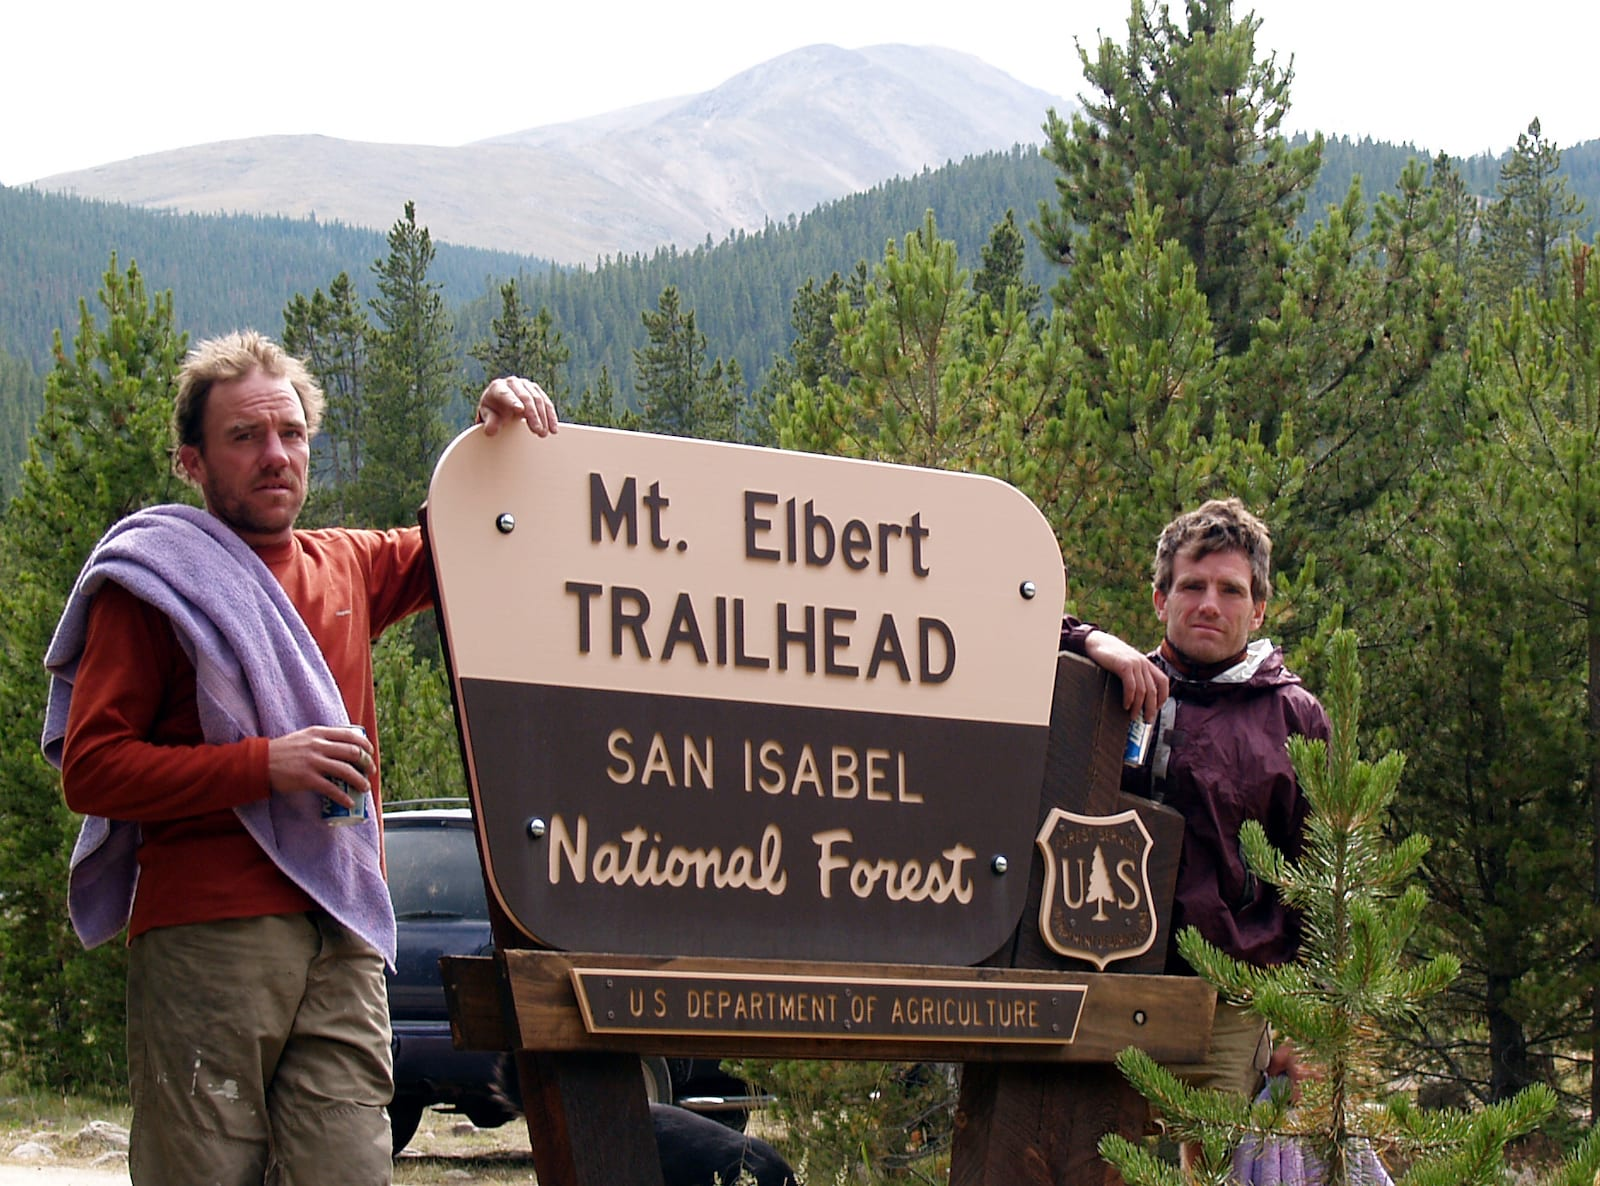 Mt. Elbert Trailhead in the San Isabel National Forest Sign